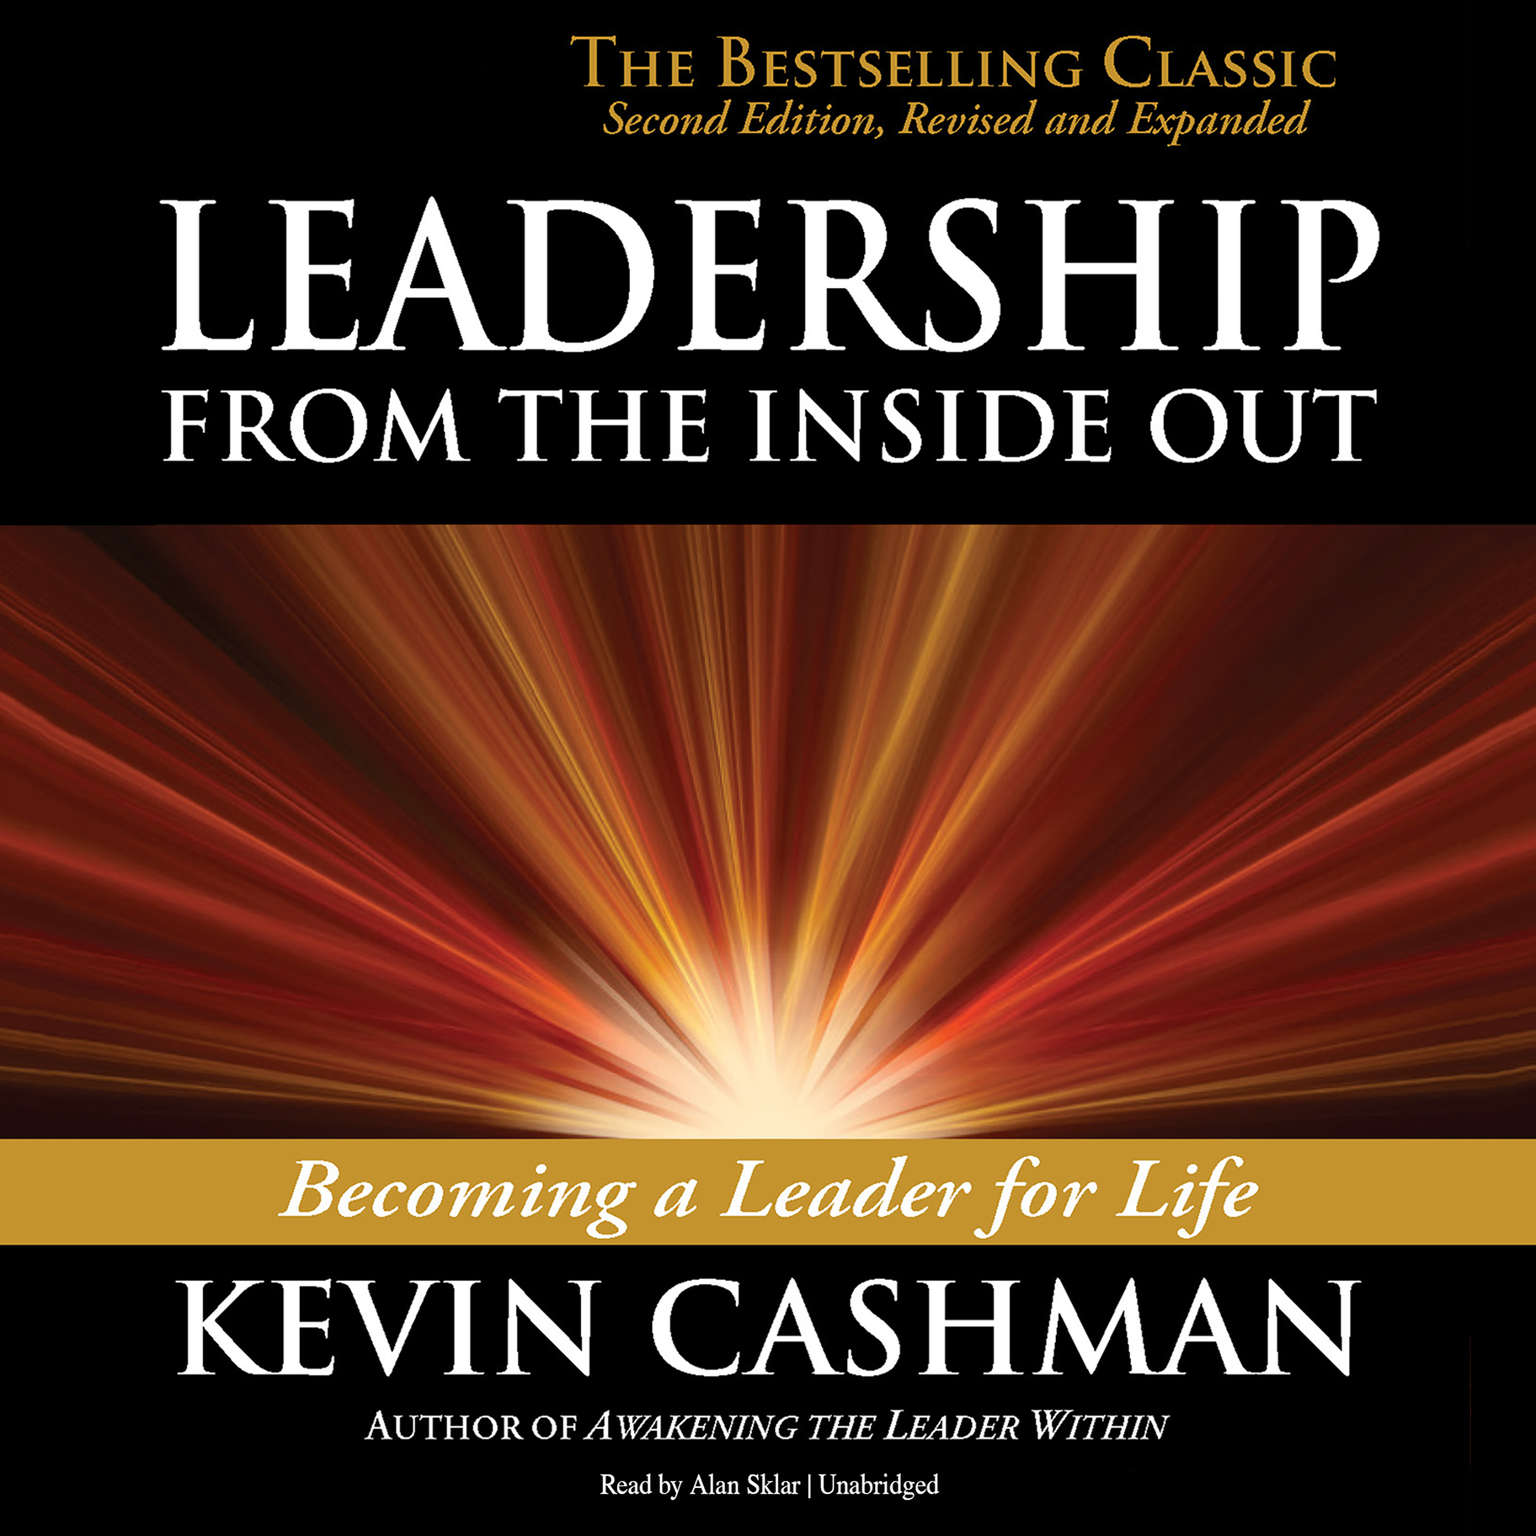 Printable Leadership from the Inside Out: Becoming  a Leader for Life, Second Edition, Revised and Expanded Audiobook Cover Art